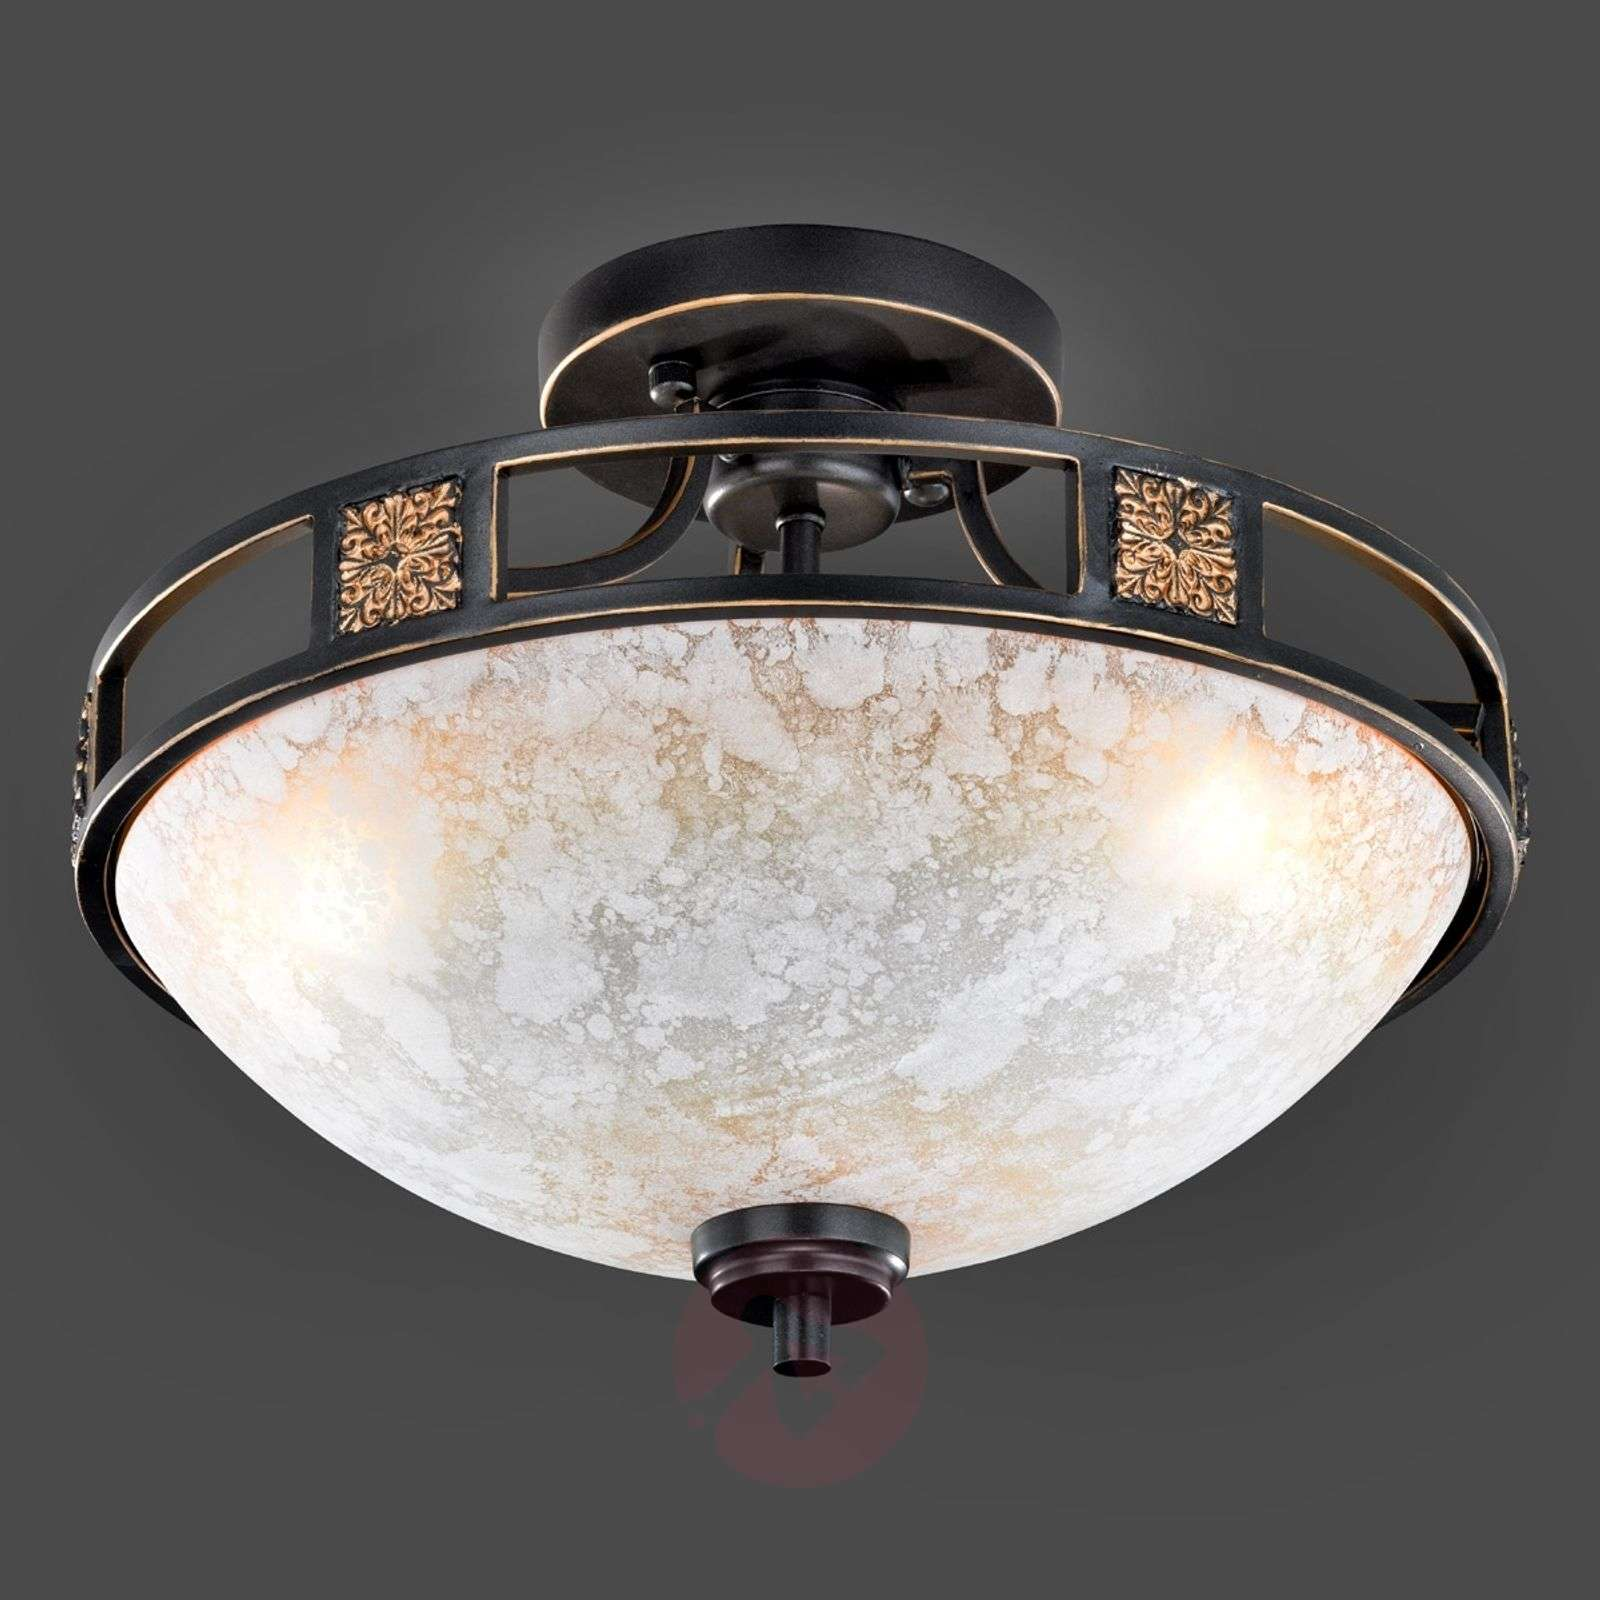 Ceiling light Caecilia with antique design, 42 cm-9004427-01